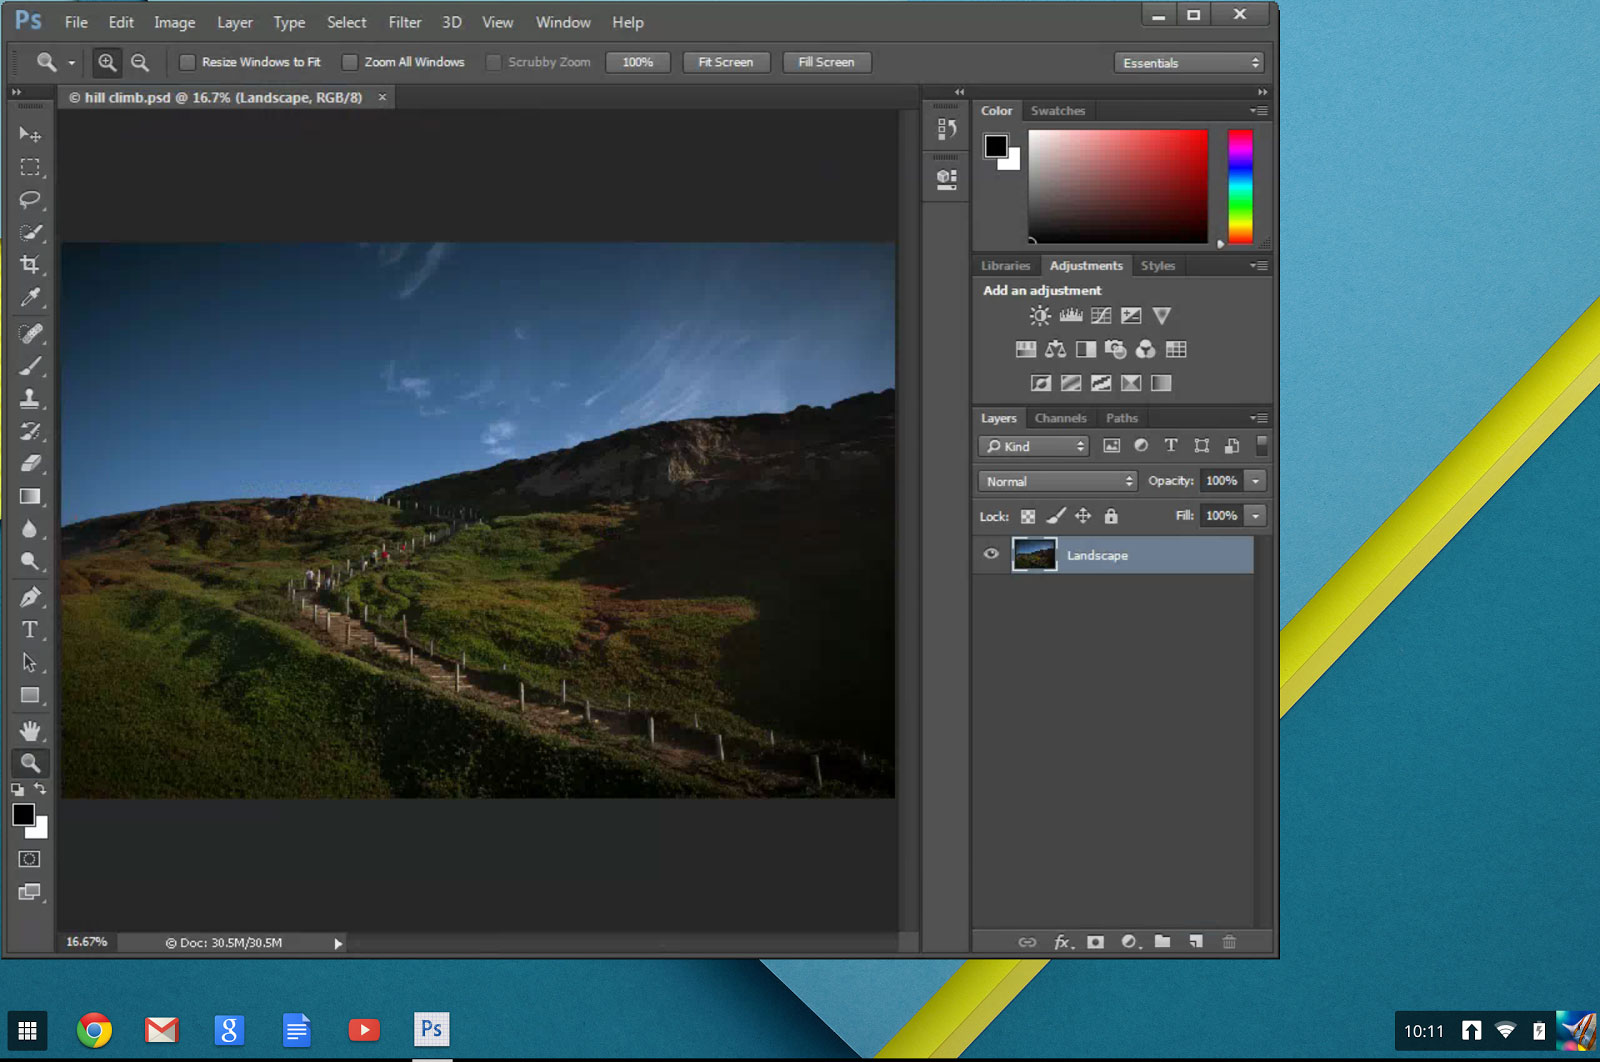 Photoshop Streaming brings Adobe's flagship image-editing software to even low-end Chromebooks that ordinarily just run Web apps.